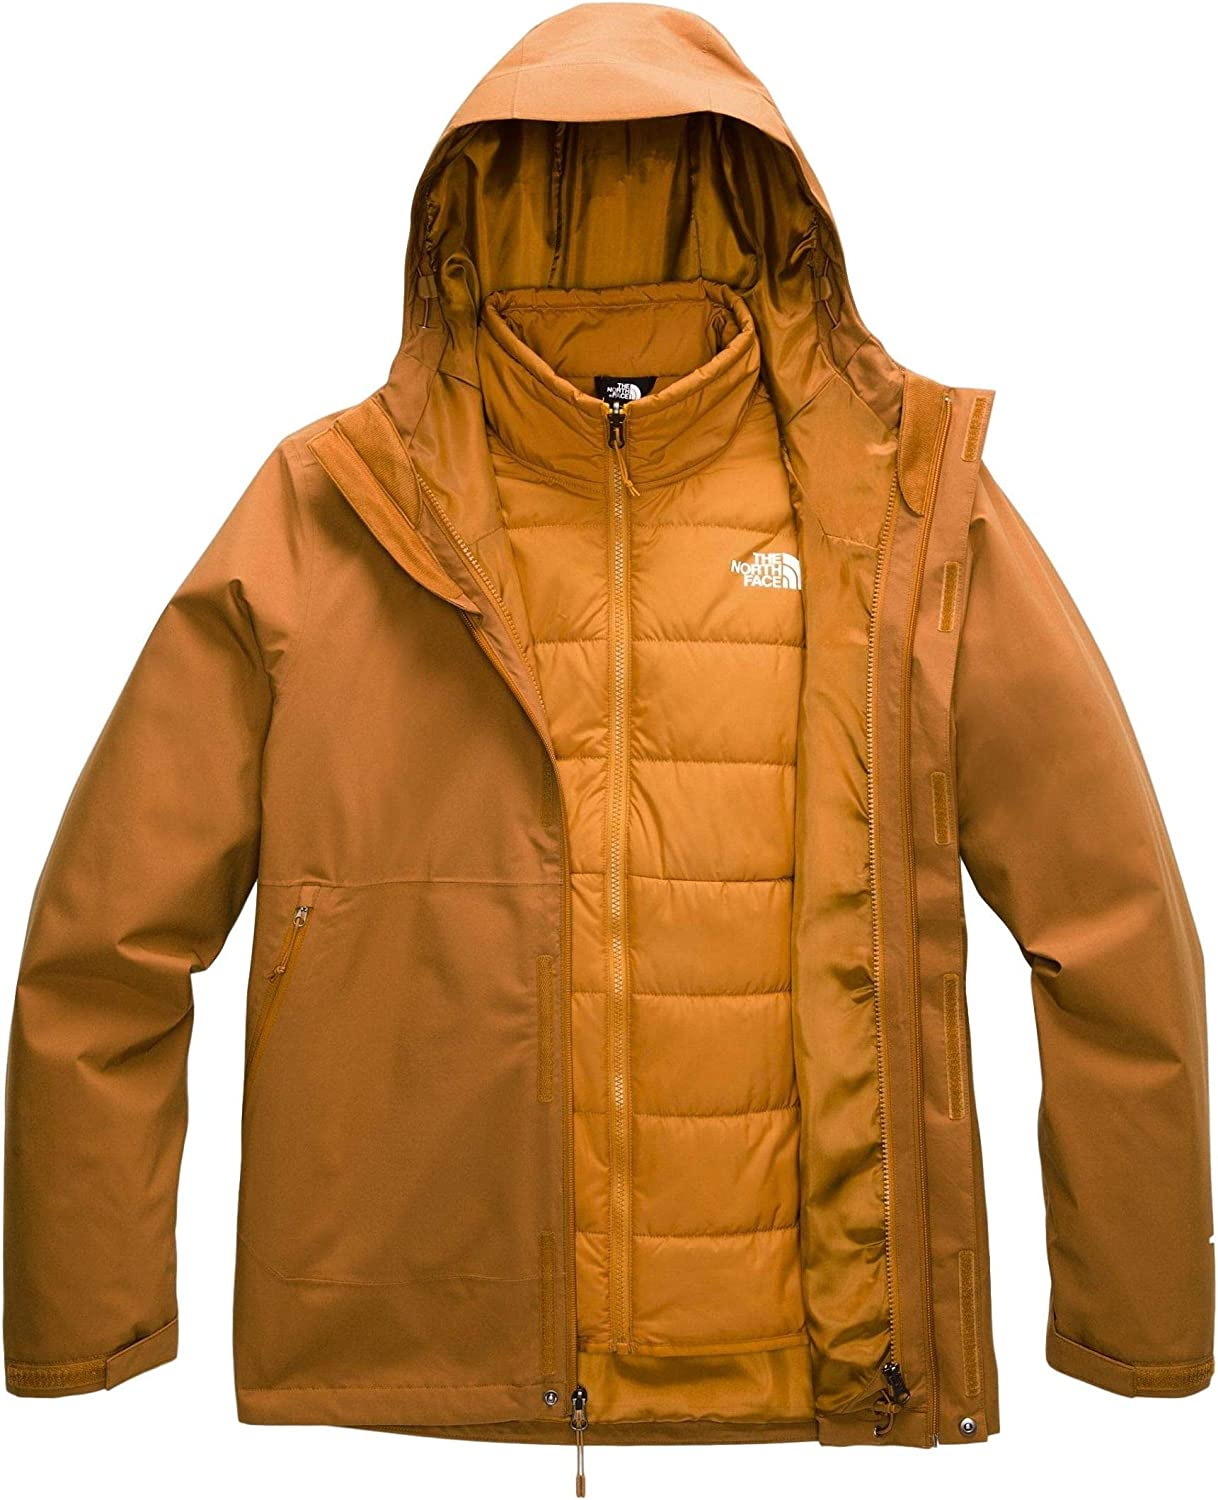 The North Face Men's Carto Triclimate Waterproof Jacket